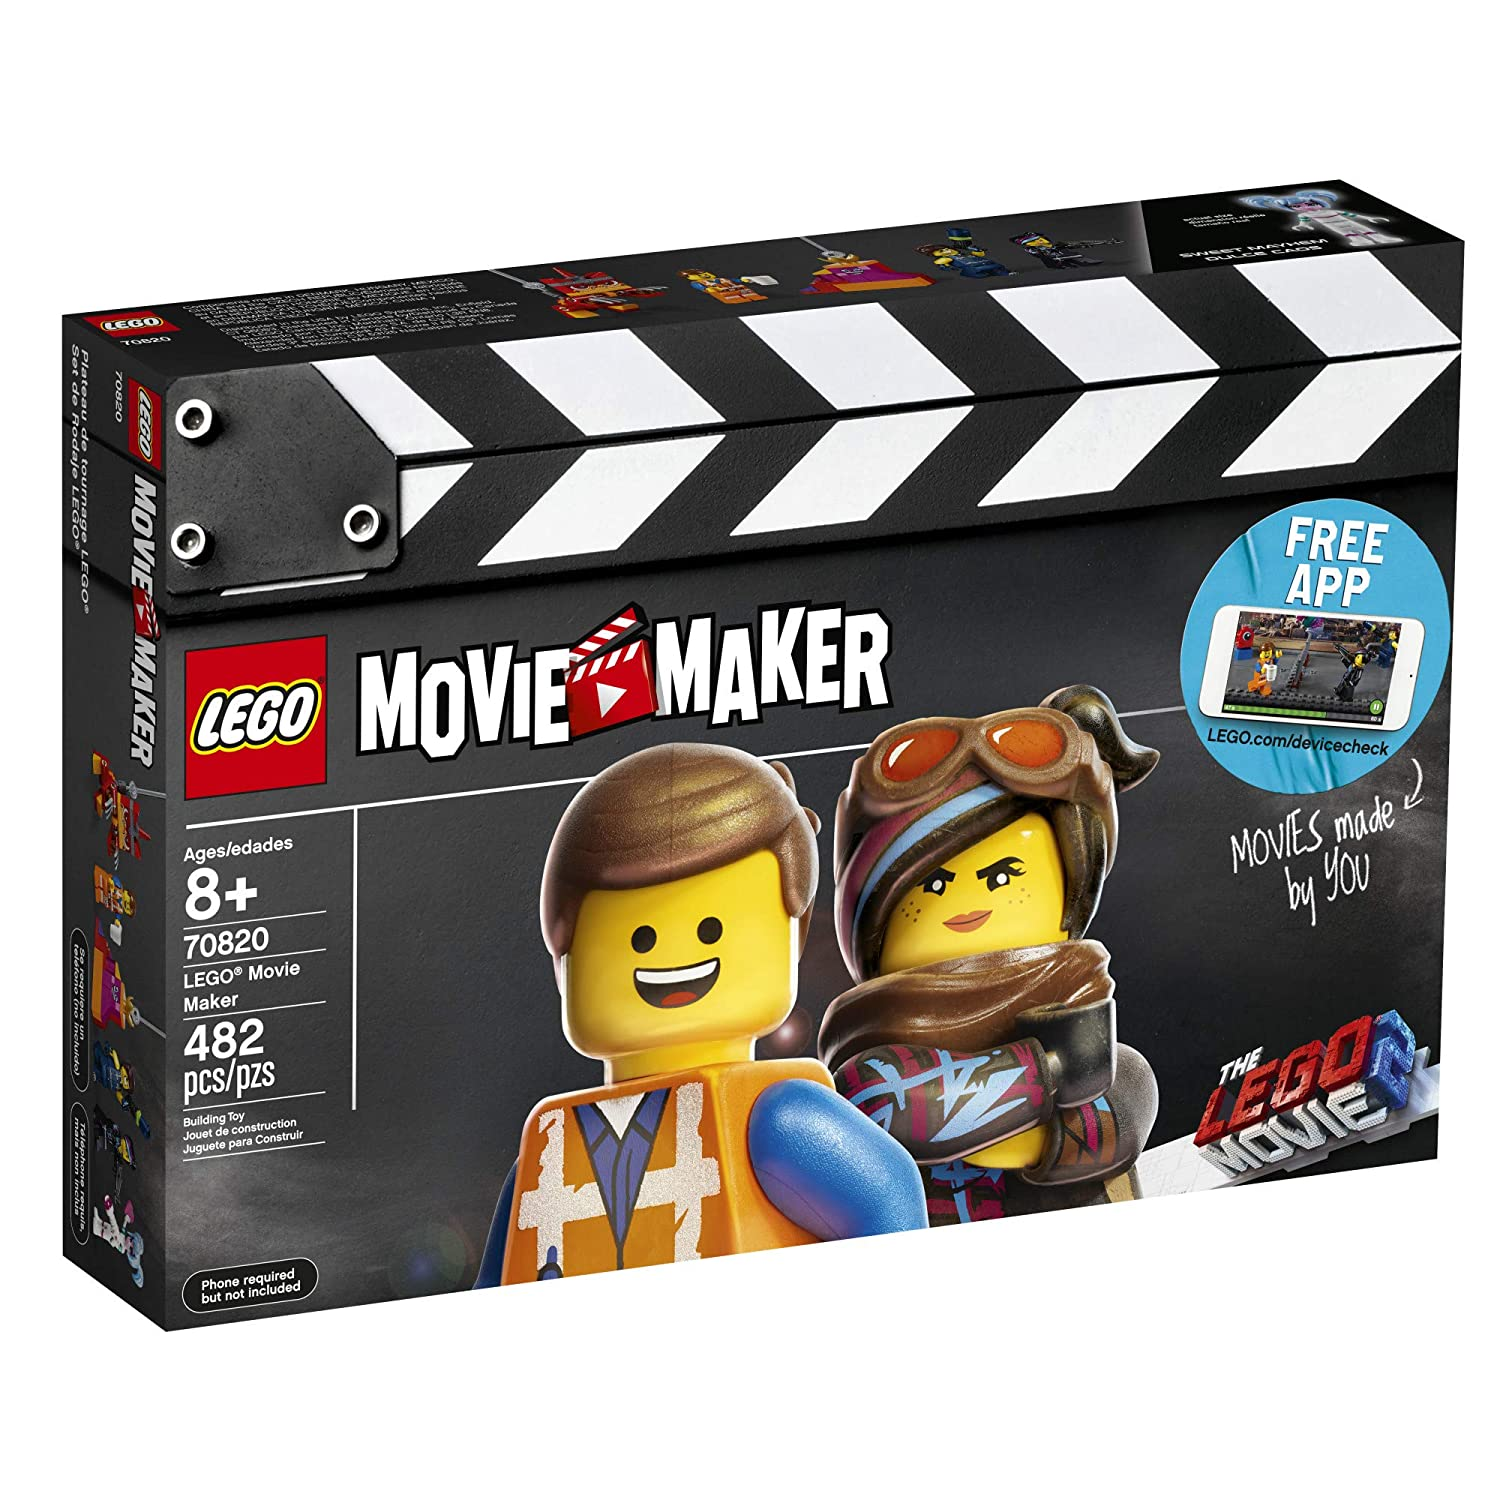 Amazoncom Lego The Lego Movie 2 Movie Maker 70820 Building Kit For